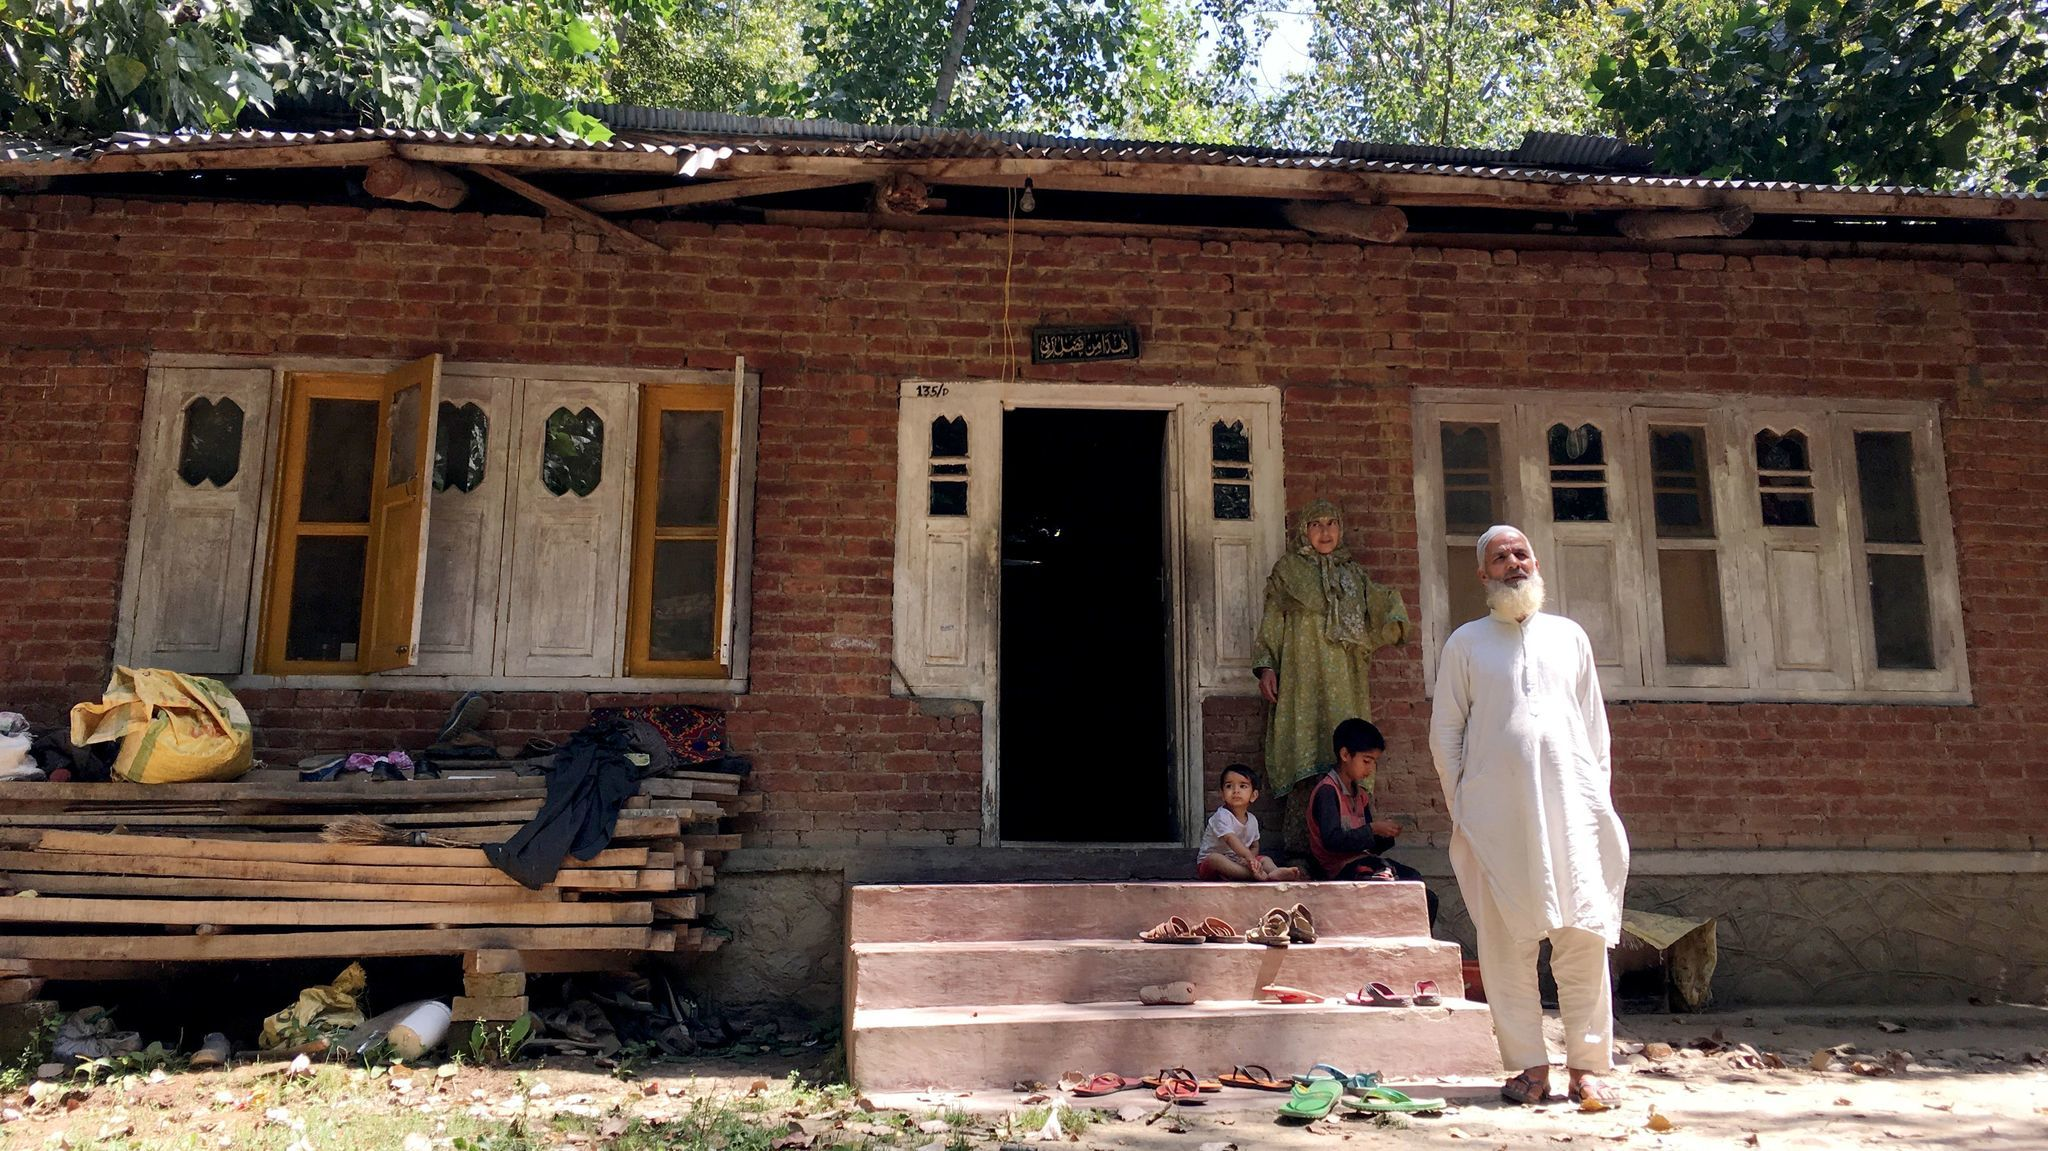 Mohammad Munawar Dar and his wife, Raja Begam, outside their house in Sopat Tangpora, in southern Kashmir.